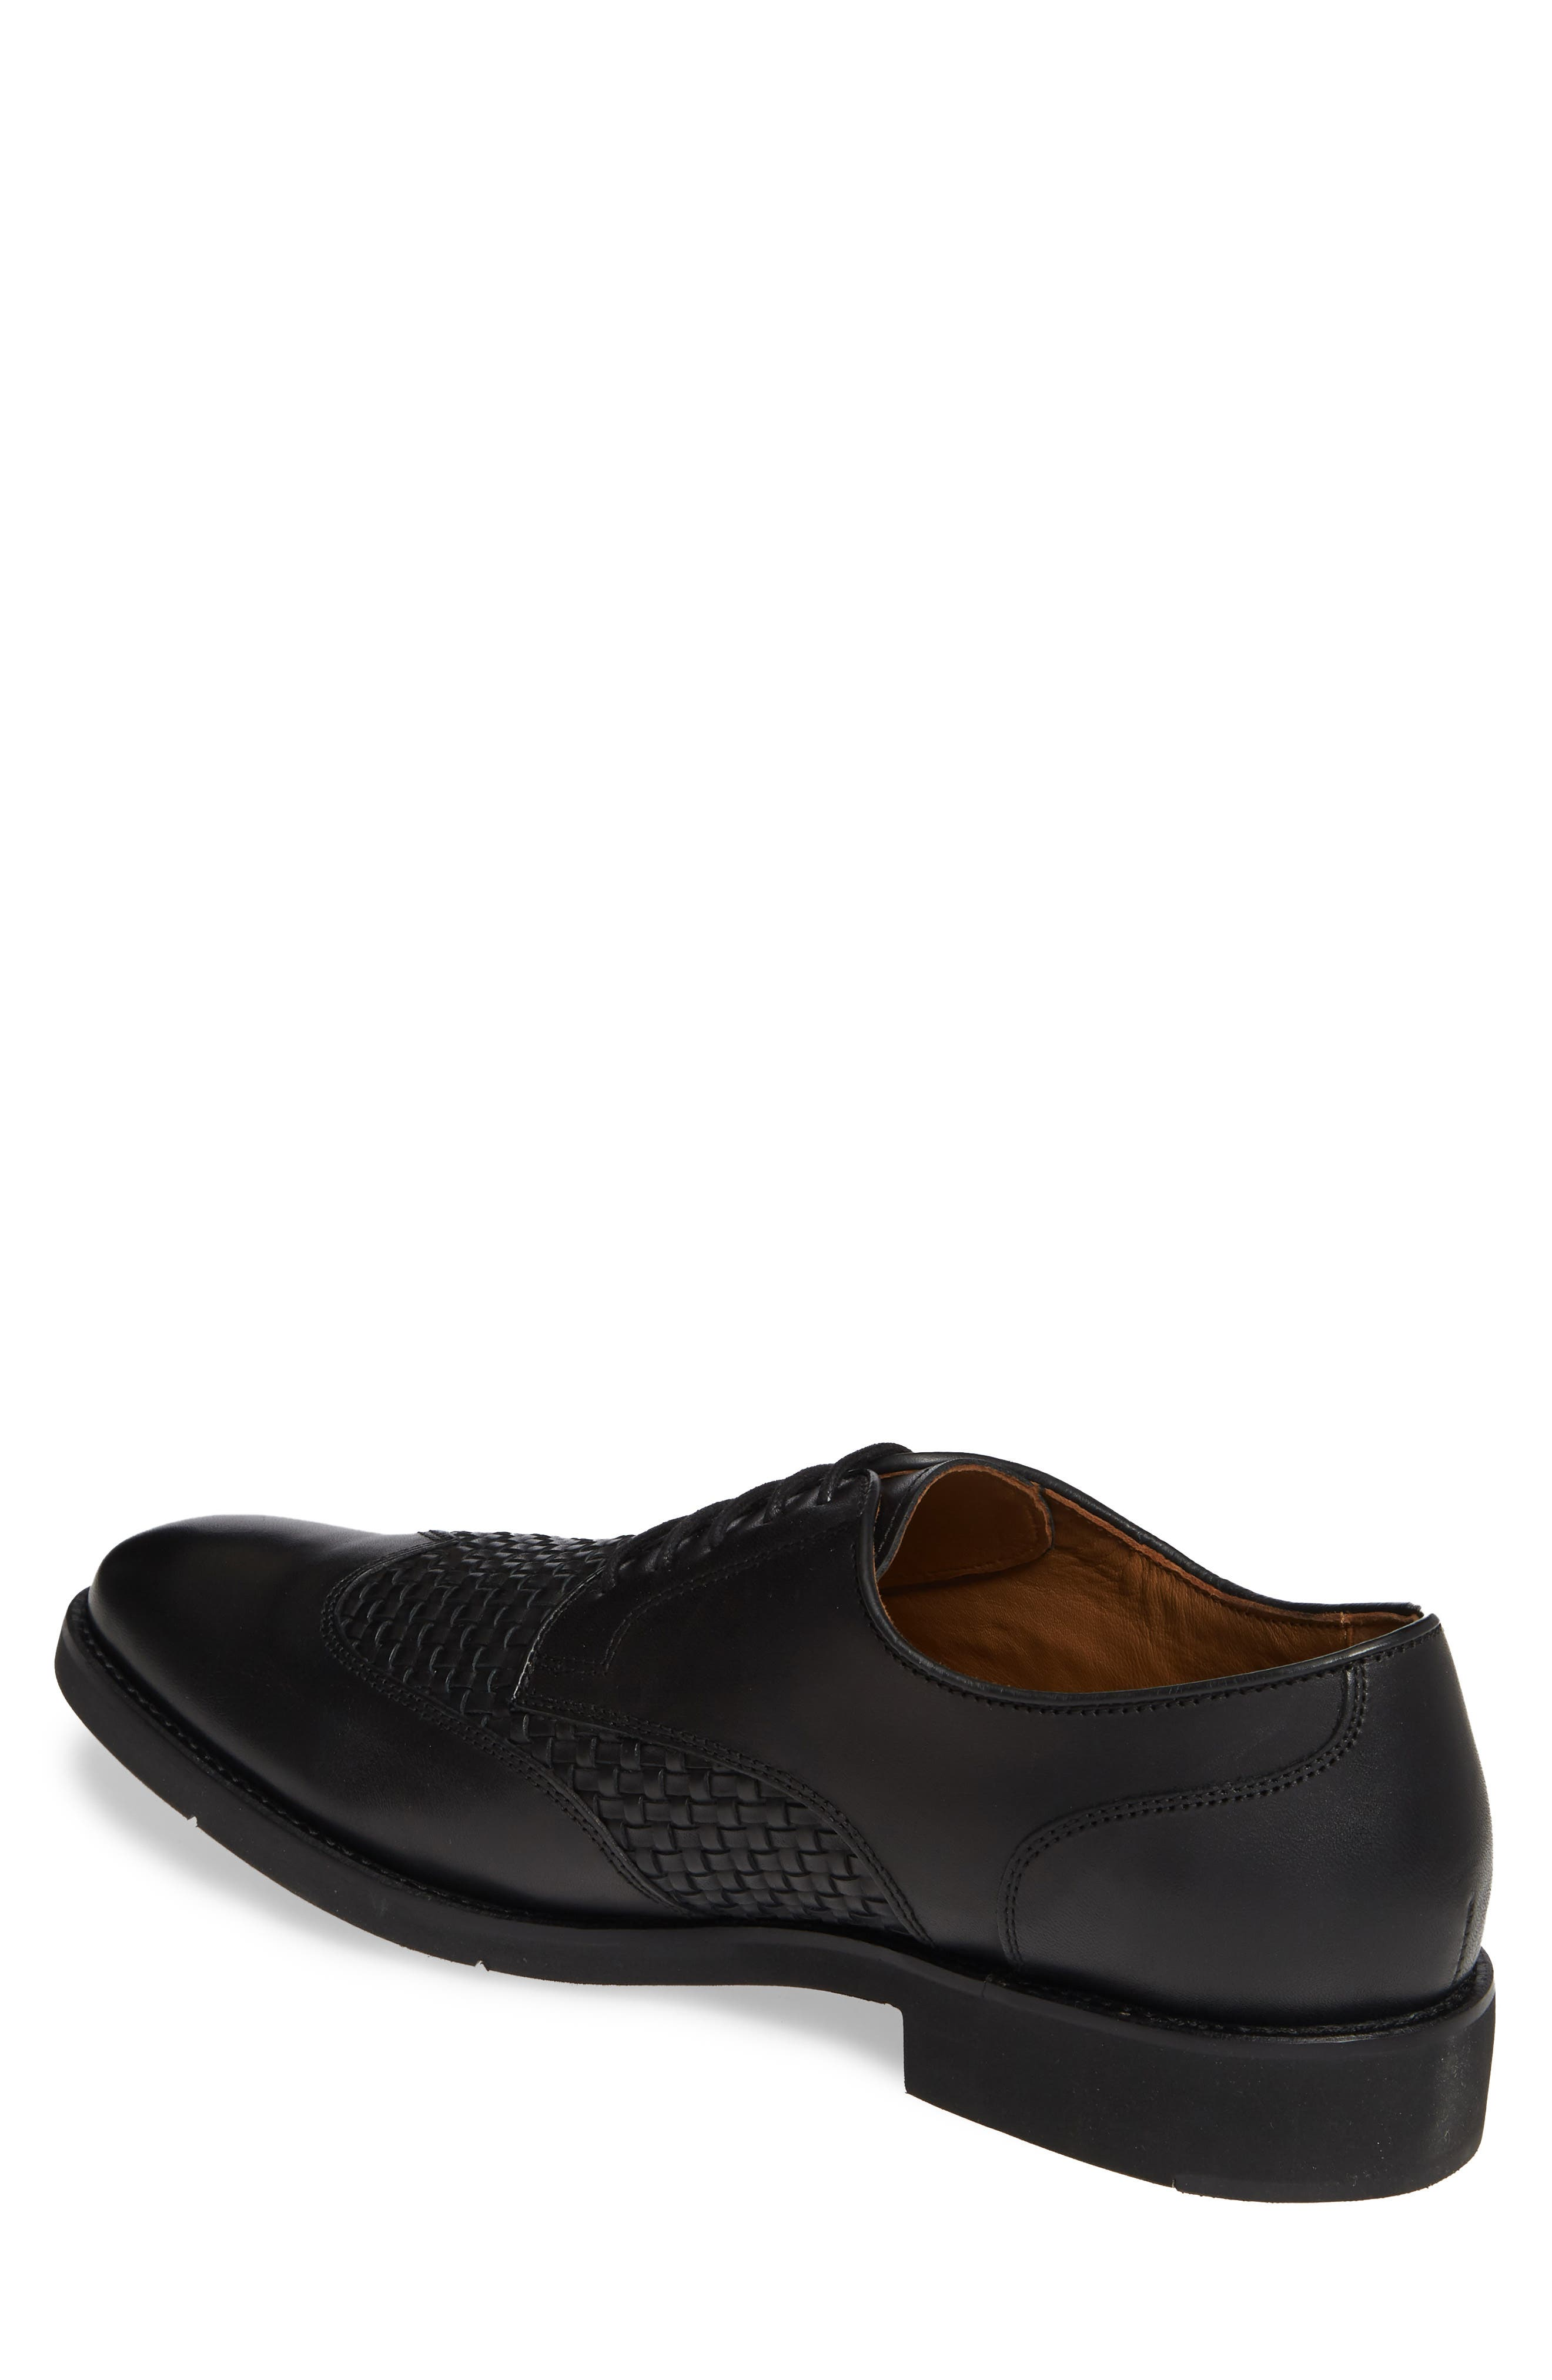 JOHNSTON & MURPHY, Carlson Woven Wingtip Derby, Alternate thumbnail 2, color, BLACK LEATHER